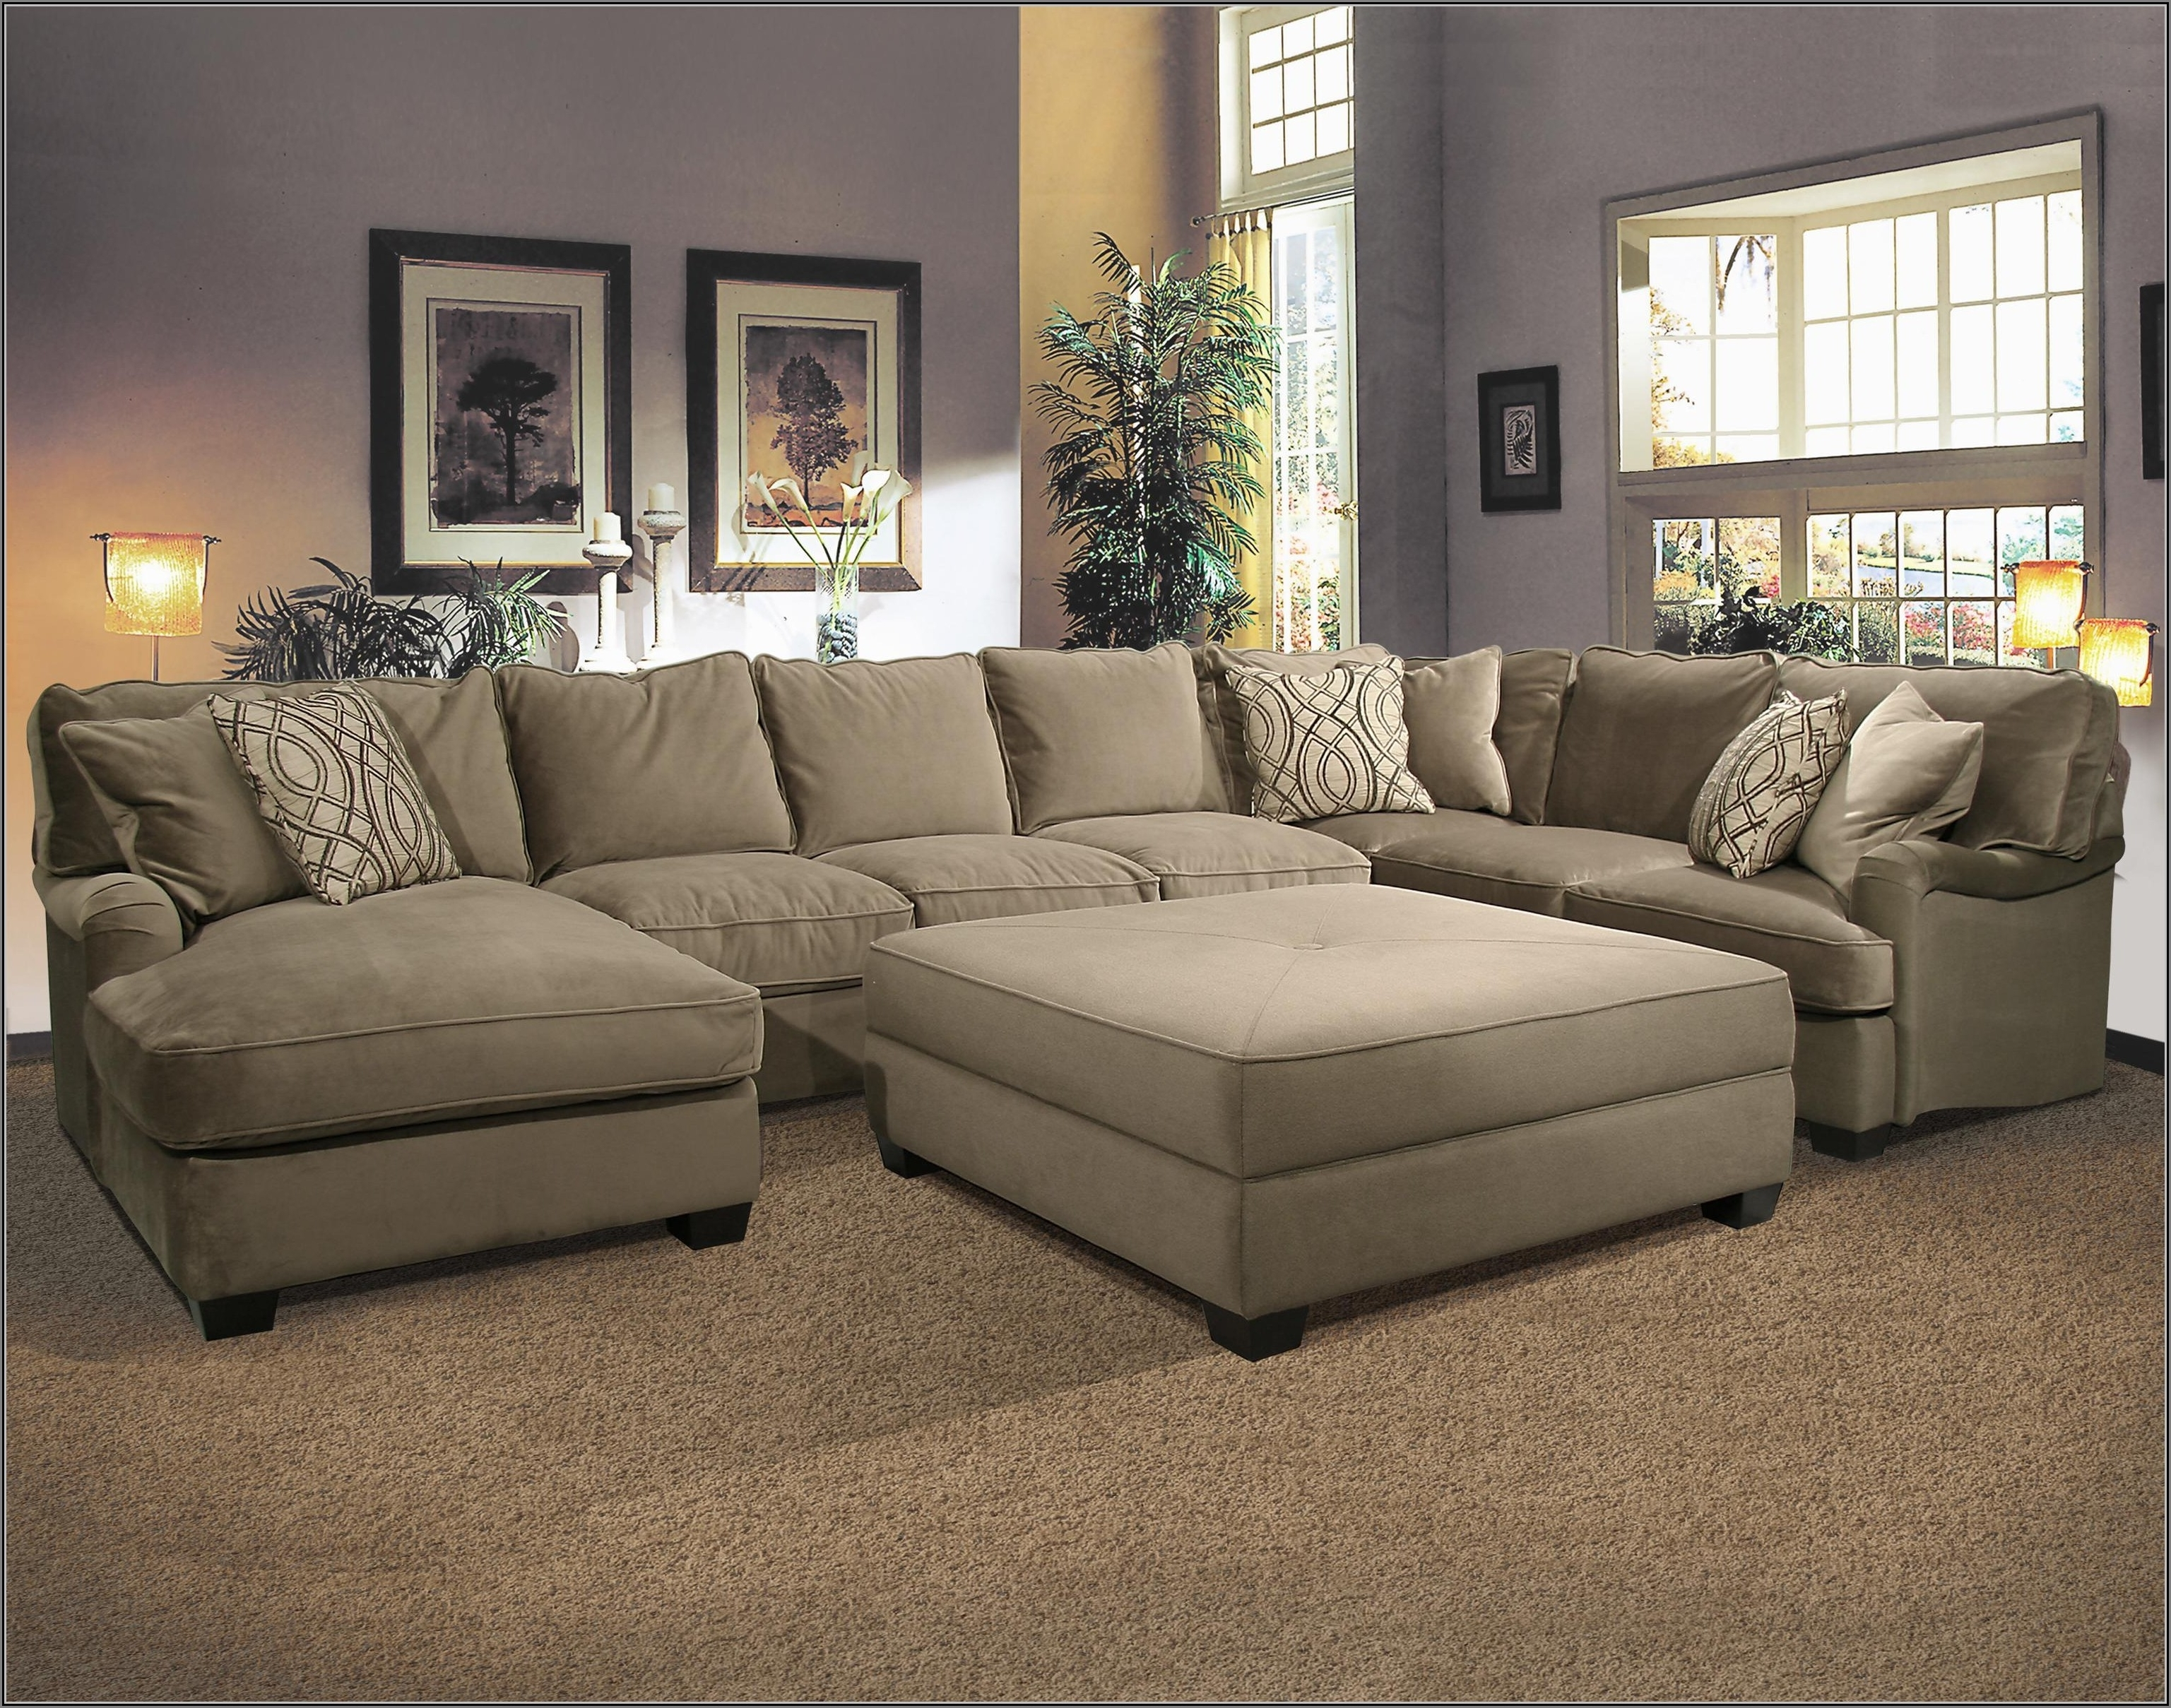 Cheap Sectionals With Ottoman With Regard To Preferred Sectional Sofa With Large Ottoman Hotelsbacau Com Intended For (View 10 of 20)